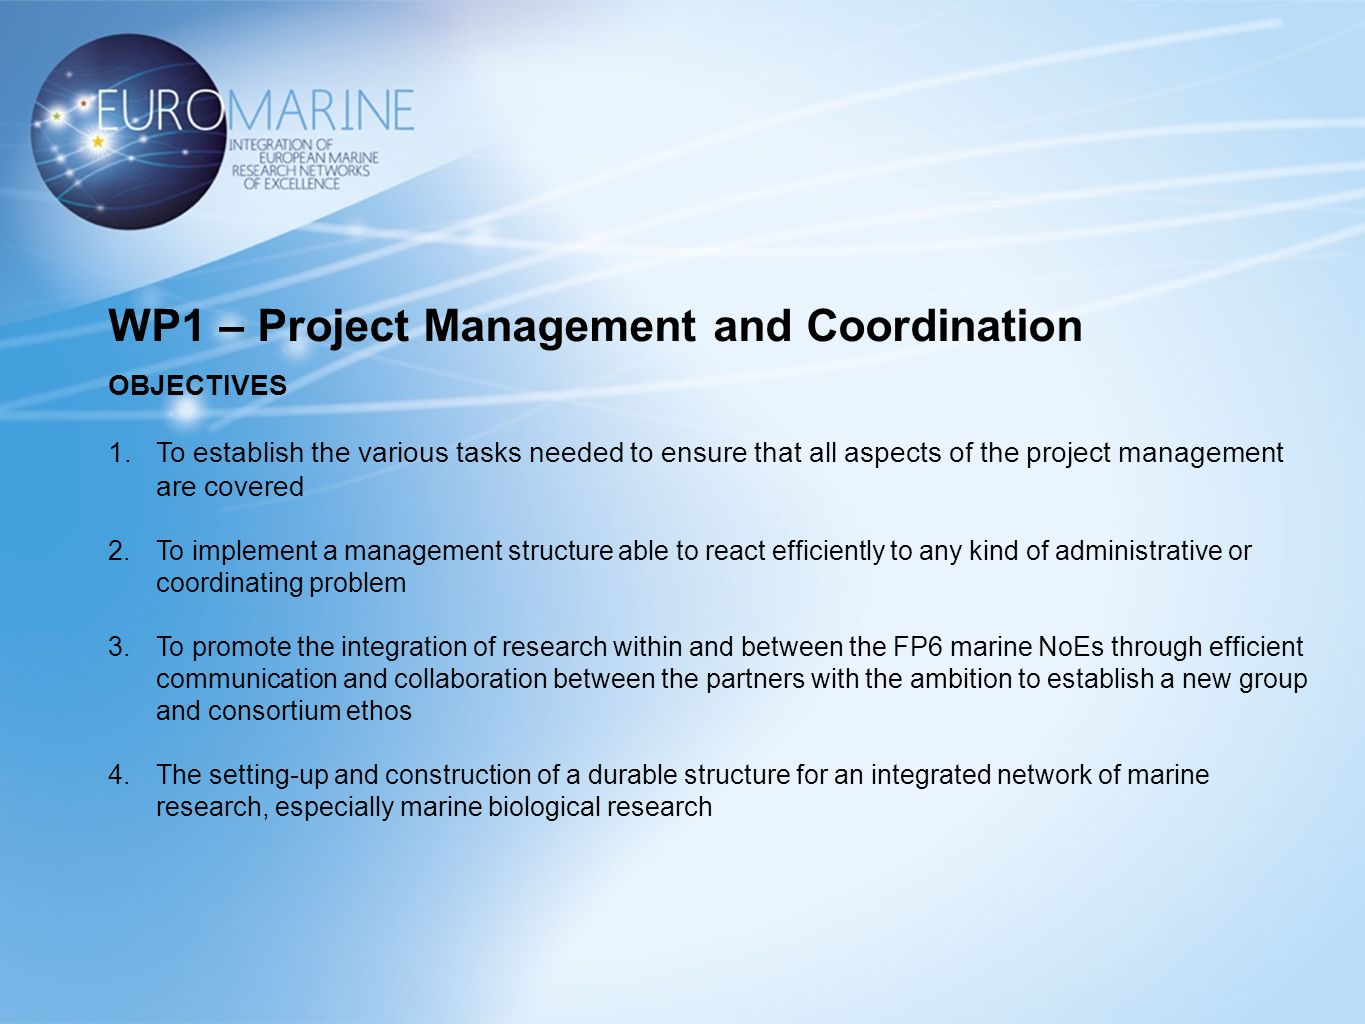 WP1 – Project Management and Coordination OBJECTIVES 1.To establish the various tasks needed to ensure that all aspects of the project management are covered 2.To implement a management structure able to react efficiently to any kind of administrative or coordinating problem 3.To promote the integration of research within and between the FP6 marine NoEs through efficient communication and collaboration between the partners with the ambition to establish a new group and consortium ethos 4.The setting-up and construction of a durable structure for an integrated network of marine research, especially marine biological research